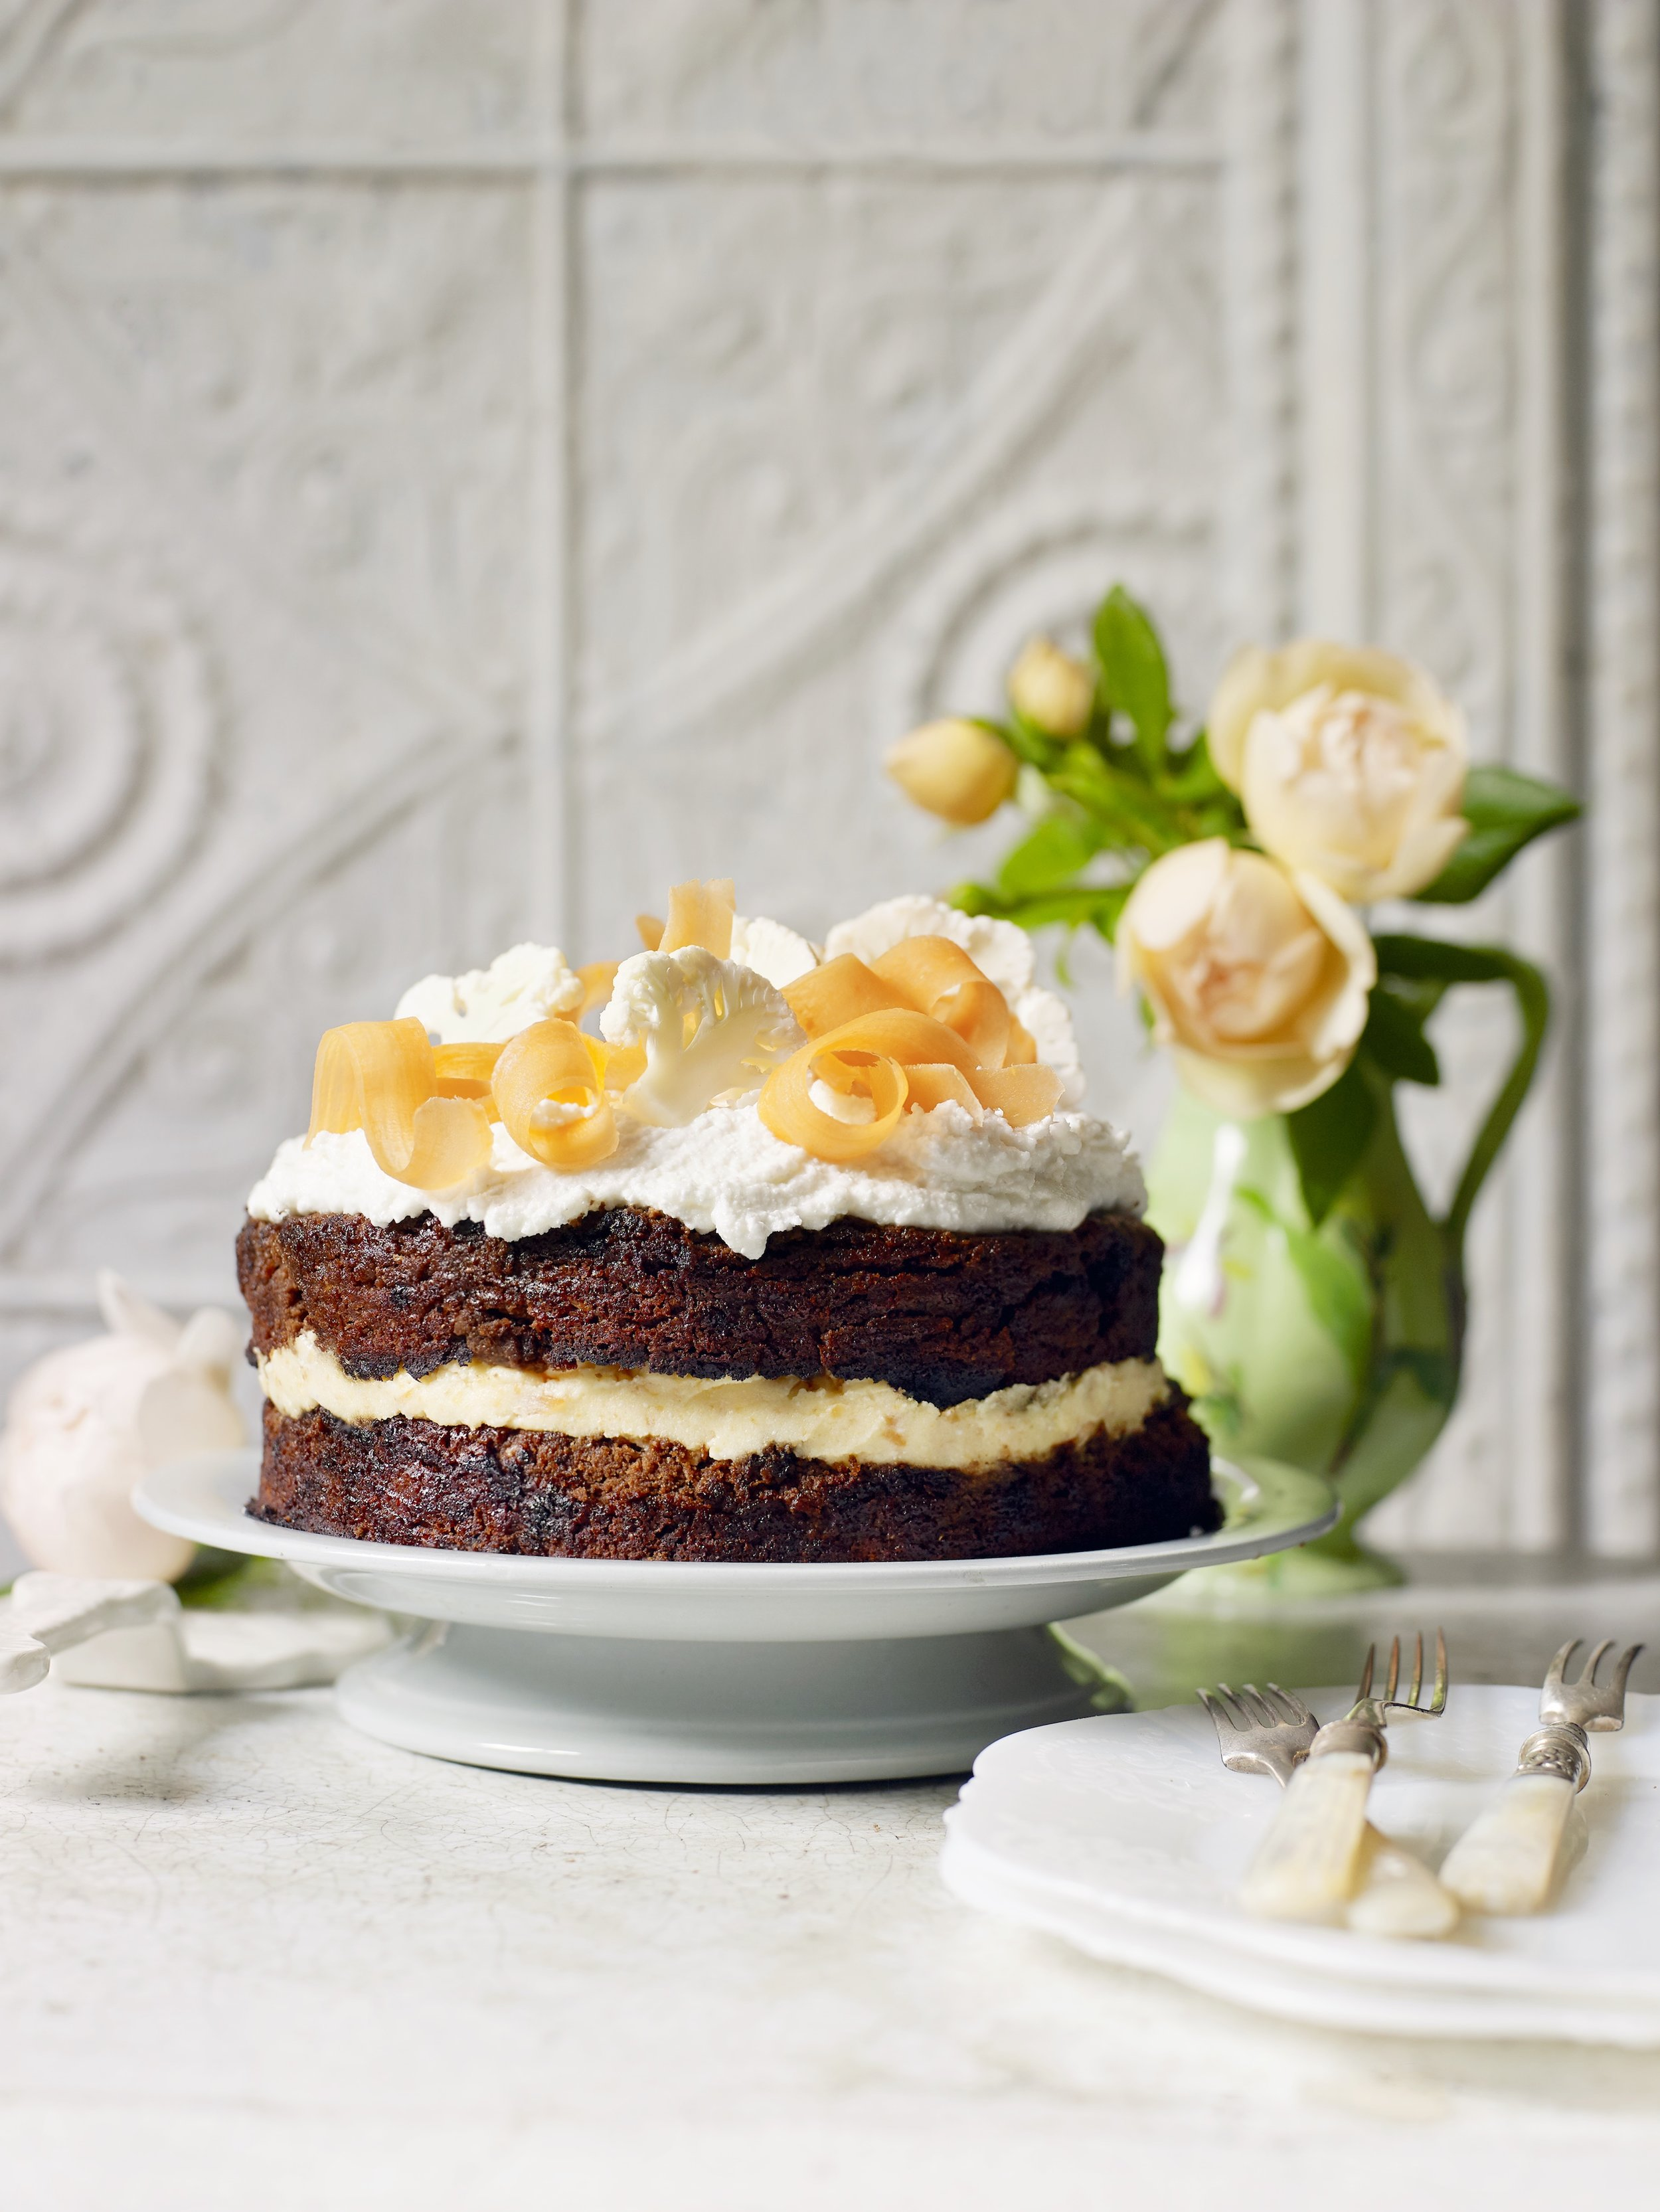 Cauliflower, Chocolate and Coconut Cake - A super moist vegan layer cake with maple syrup